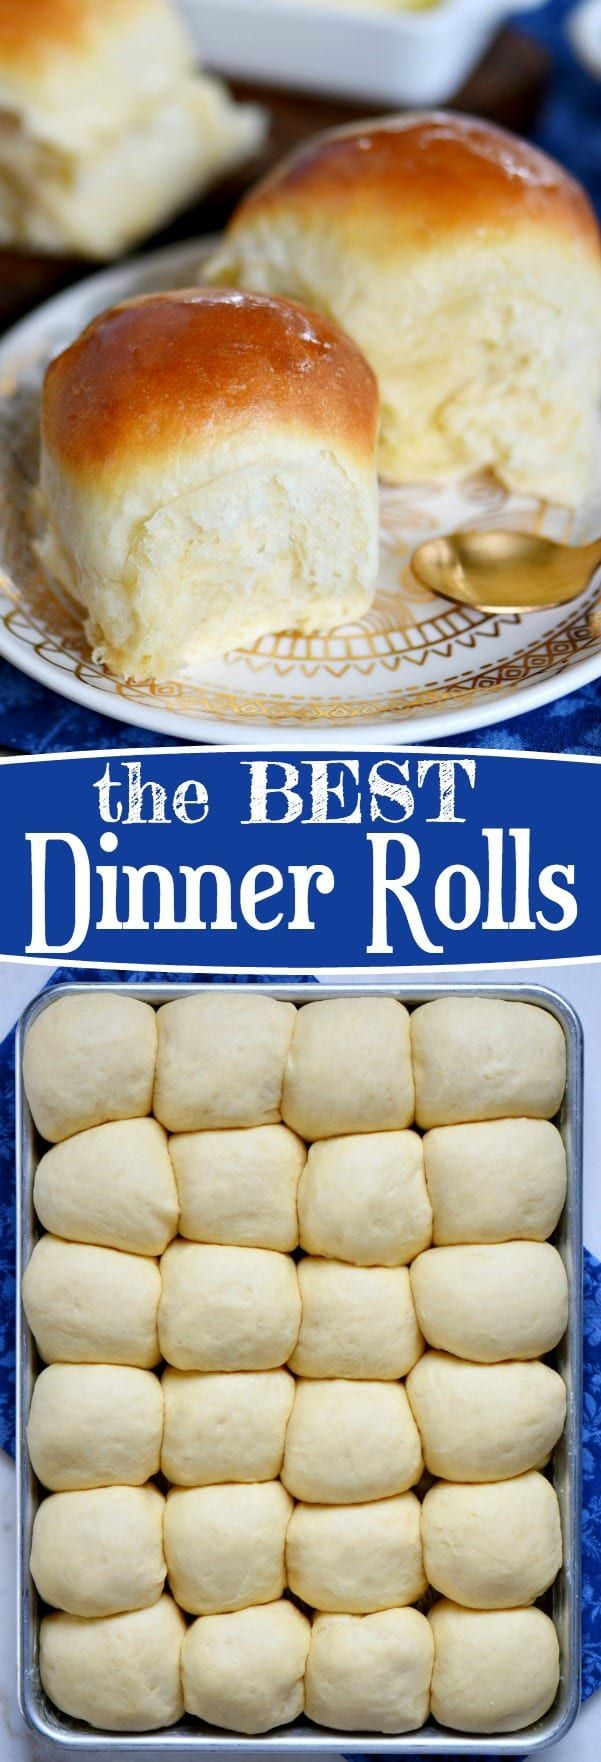 Light, fluffy, buttery dinner rolls are impossible to resist. Homemade with just a handful of simple ingredients, the BEST Dinner Rolls can you be on your table in a jiffy. These easy dinner rolls really are the perfect addition to any meal! // Mom On Timeout #dinner #rolls #bread #baking #yeast #quick #easy #recipe #mixer #Easter #Christmas #Thanksgiving